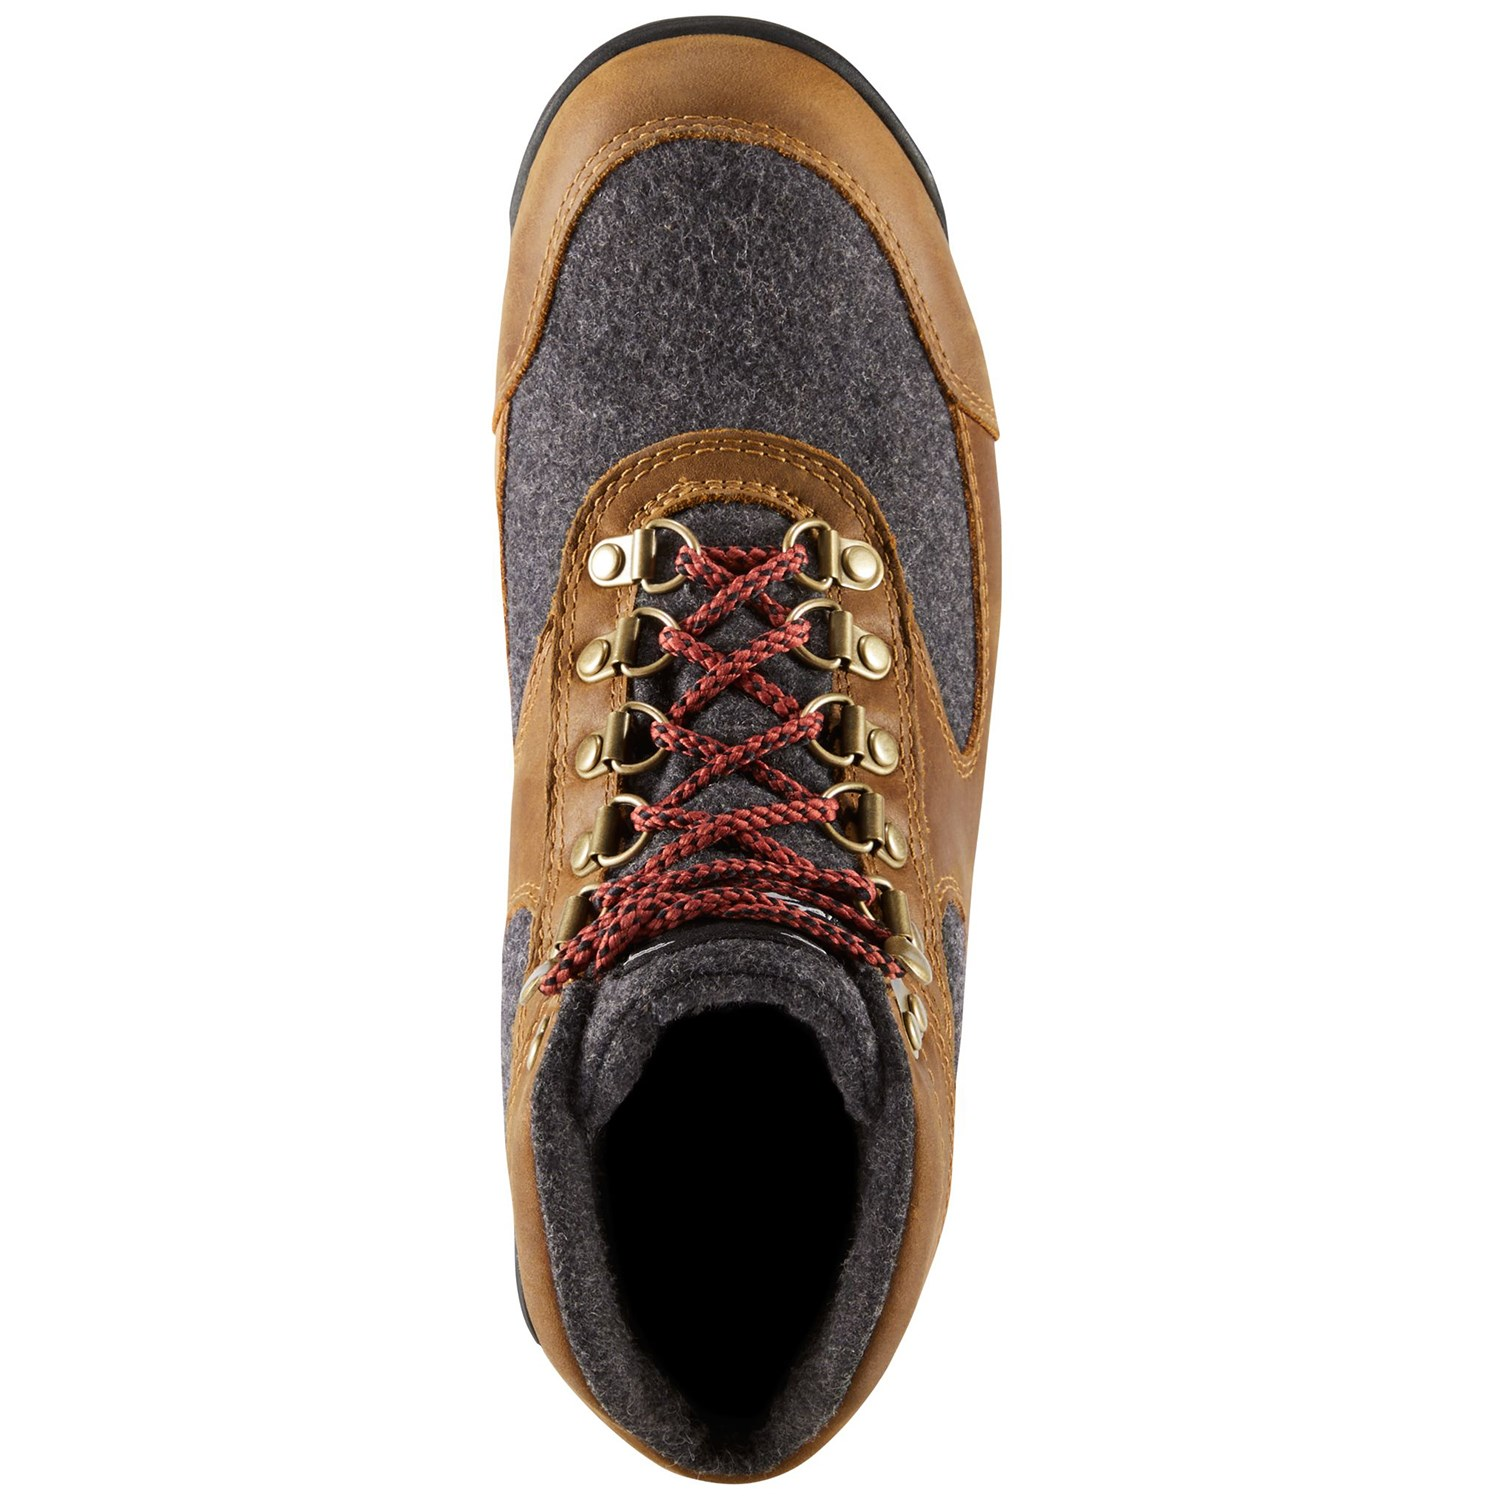 aed61e9bfc4 Danner Jag Wool Boots - Women's